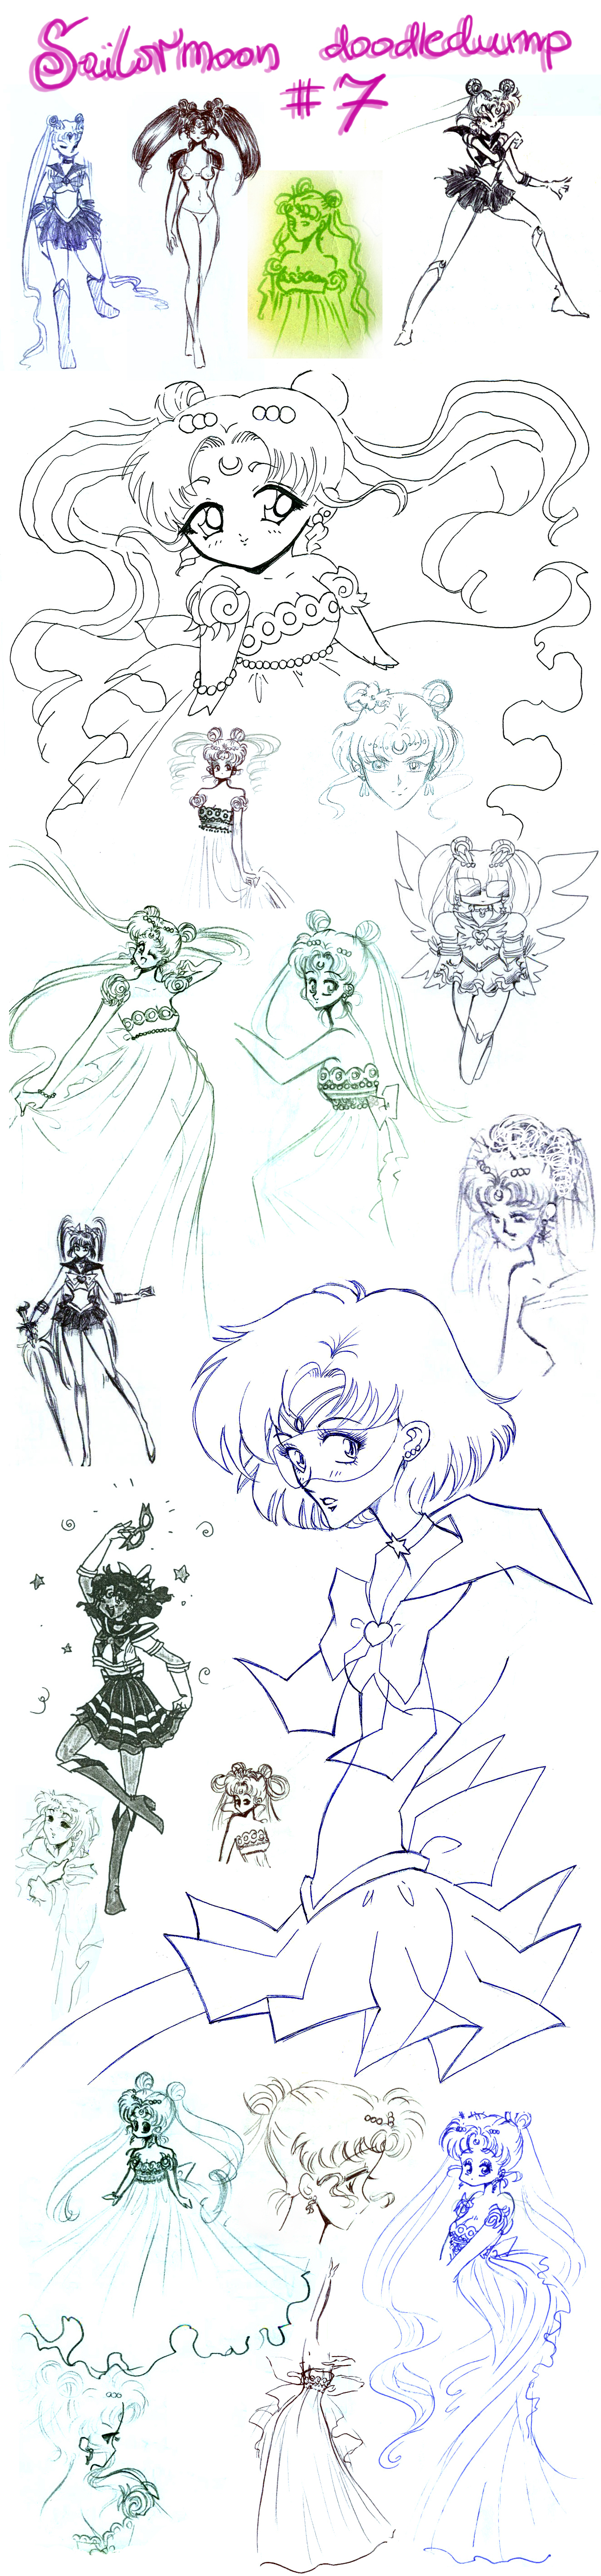 Sailormoon doodledump 7 by NitroFieja